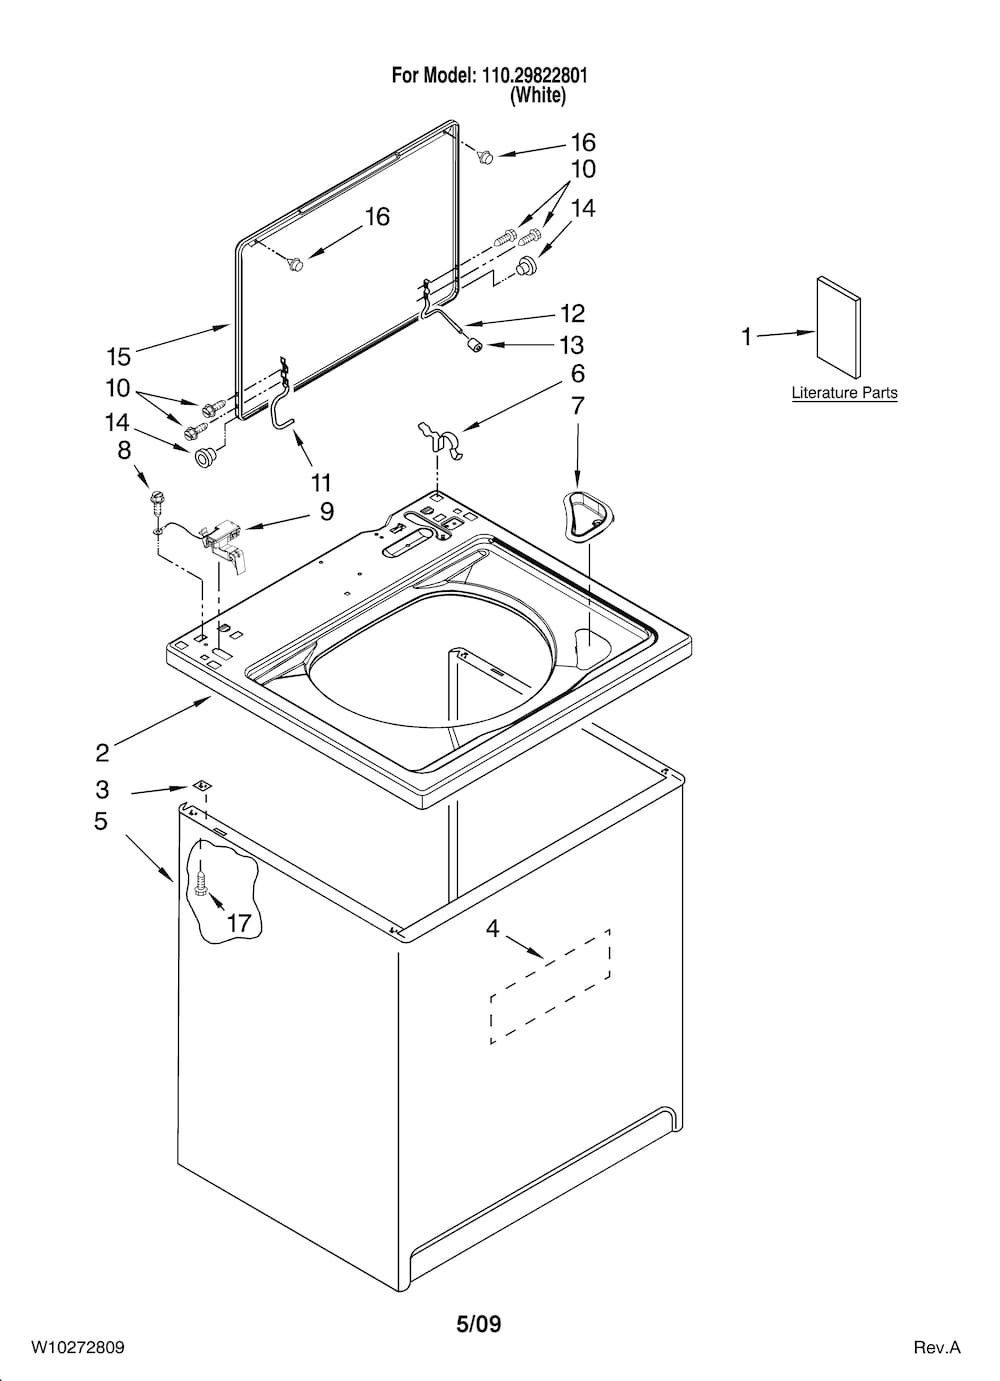 kenmore residential washer parts model 11029822801 sears for kenmore 90 series washer parts diagram?resize\\\=840%2C1160\\\&ssl\\\=1 kenmore appliance wiring diagrams on kenmore download wirning diagrams kenmore refrigerator wiring diagram at eliteediting.co